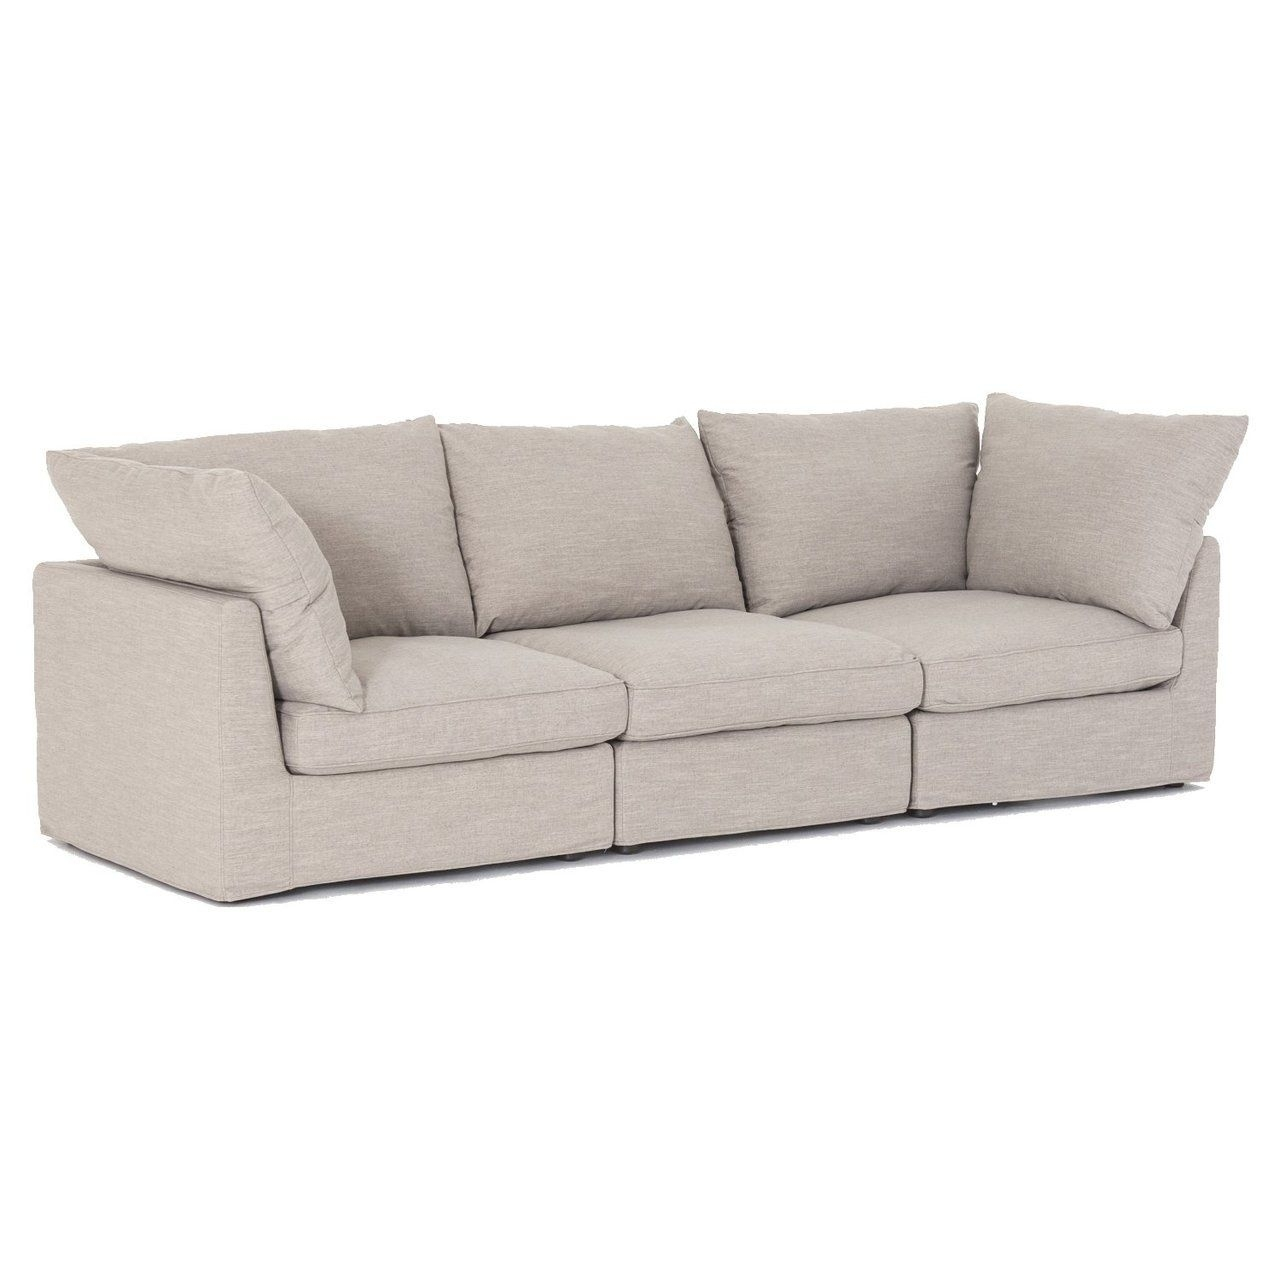 Harper Foam 3 Piece Sectional W/raf Chaise Pertaining To Aquarius Light Grey 2 Piece Sectionals With Raf Chaise (View 25 of 25)